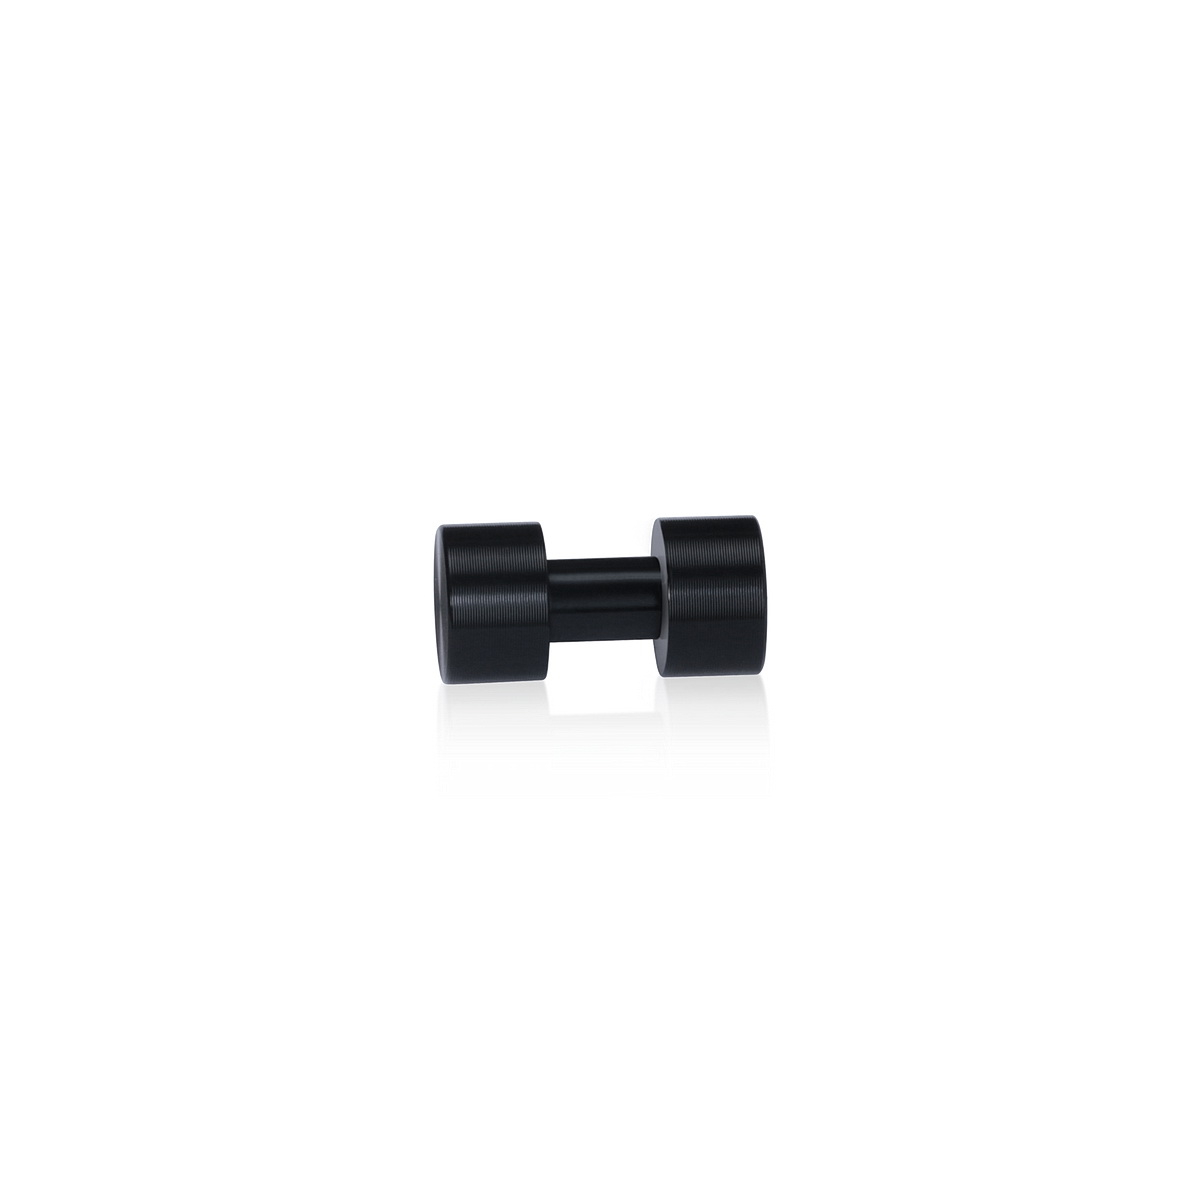 Material Connector Aluminum Black Anodized